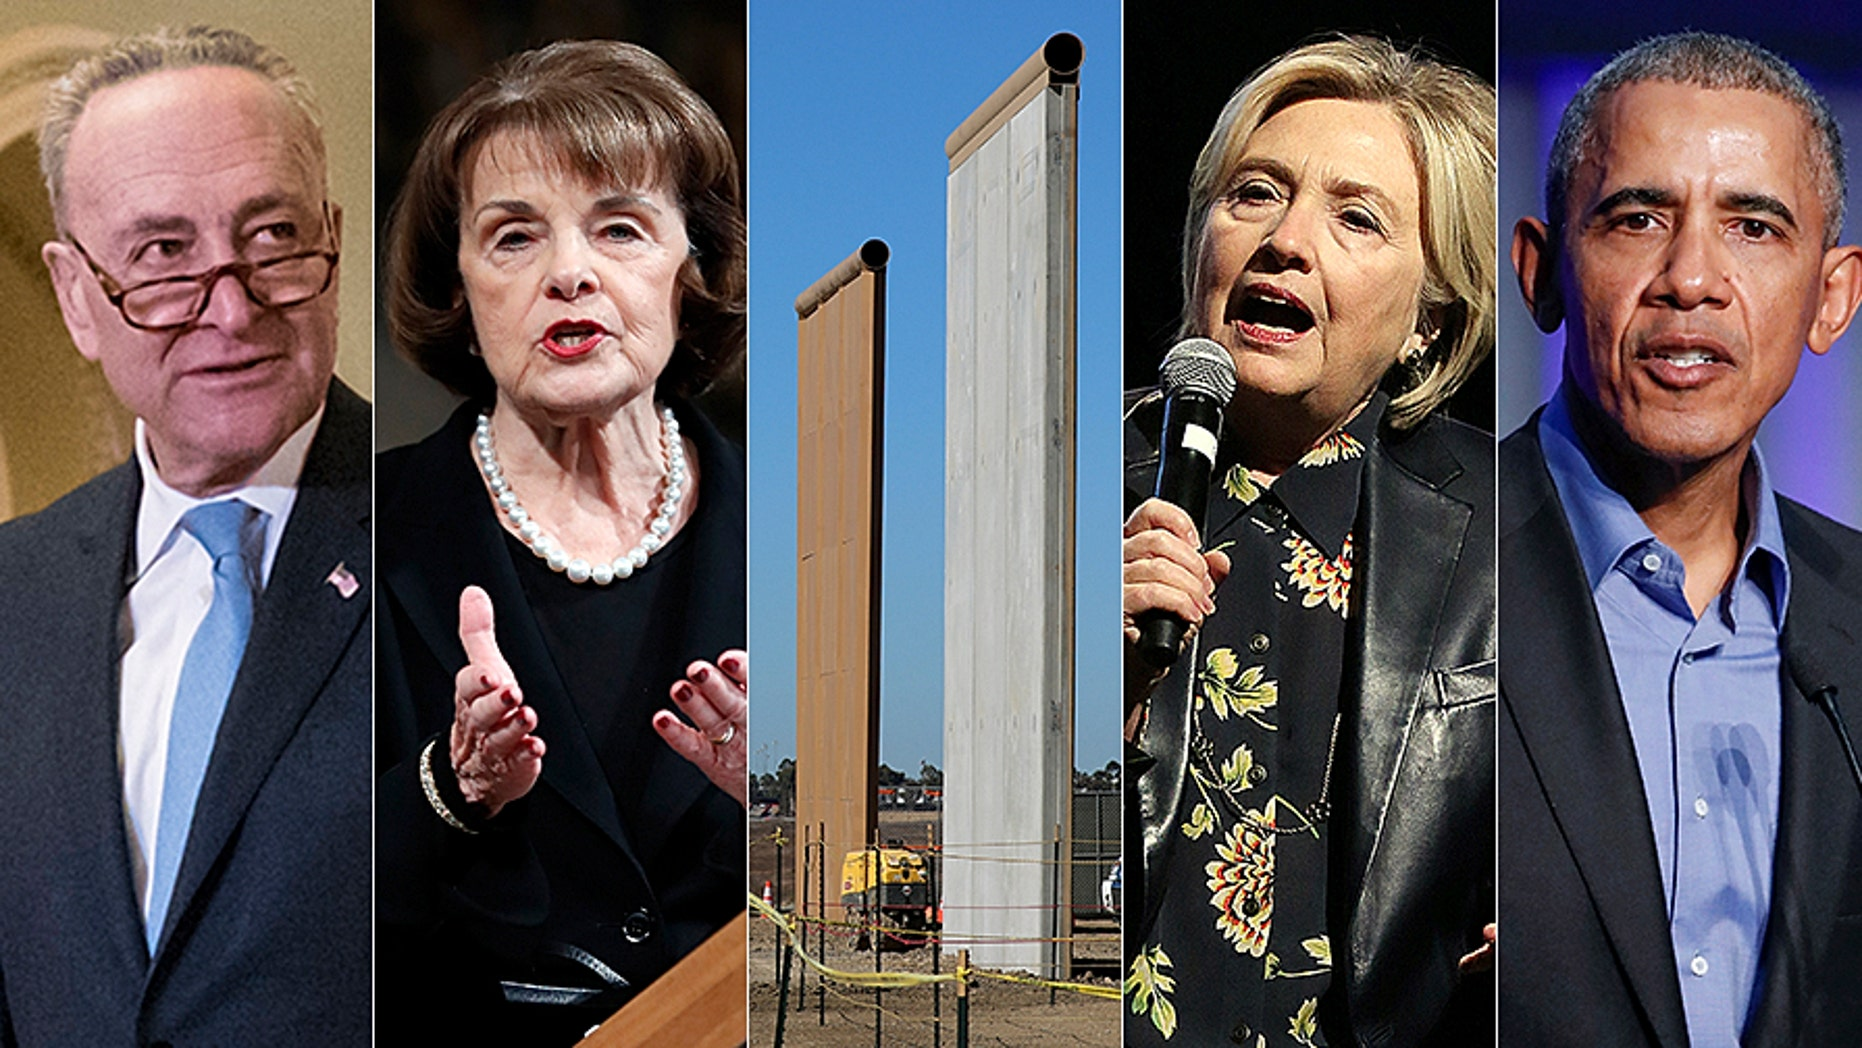 During their time in the Senate, Hillary Clinton and Barack Obama voted in favor of a physical border barrier. And just five years ago, all Senate Democrats, including Senate Minority Leader Chuck Schumer and Dianne Feinstein, voted in favor of 700 miles of border fencing.